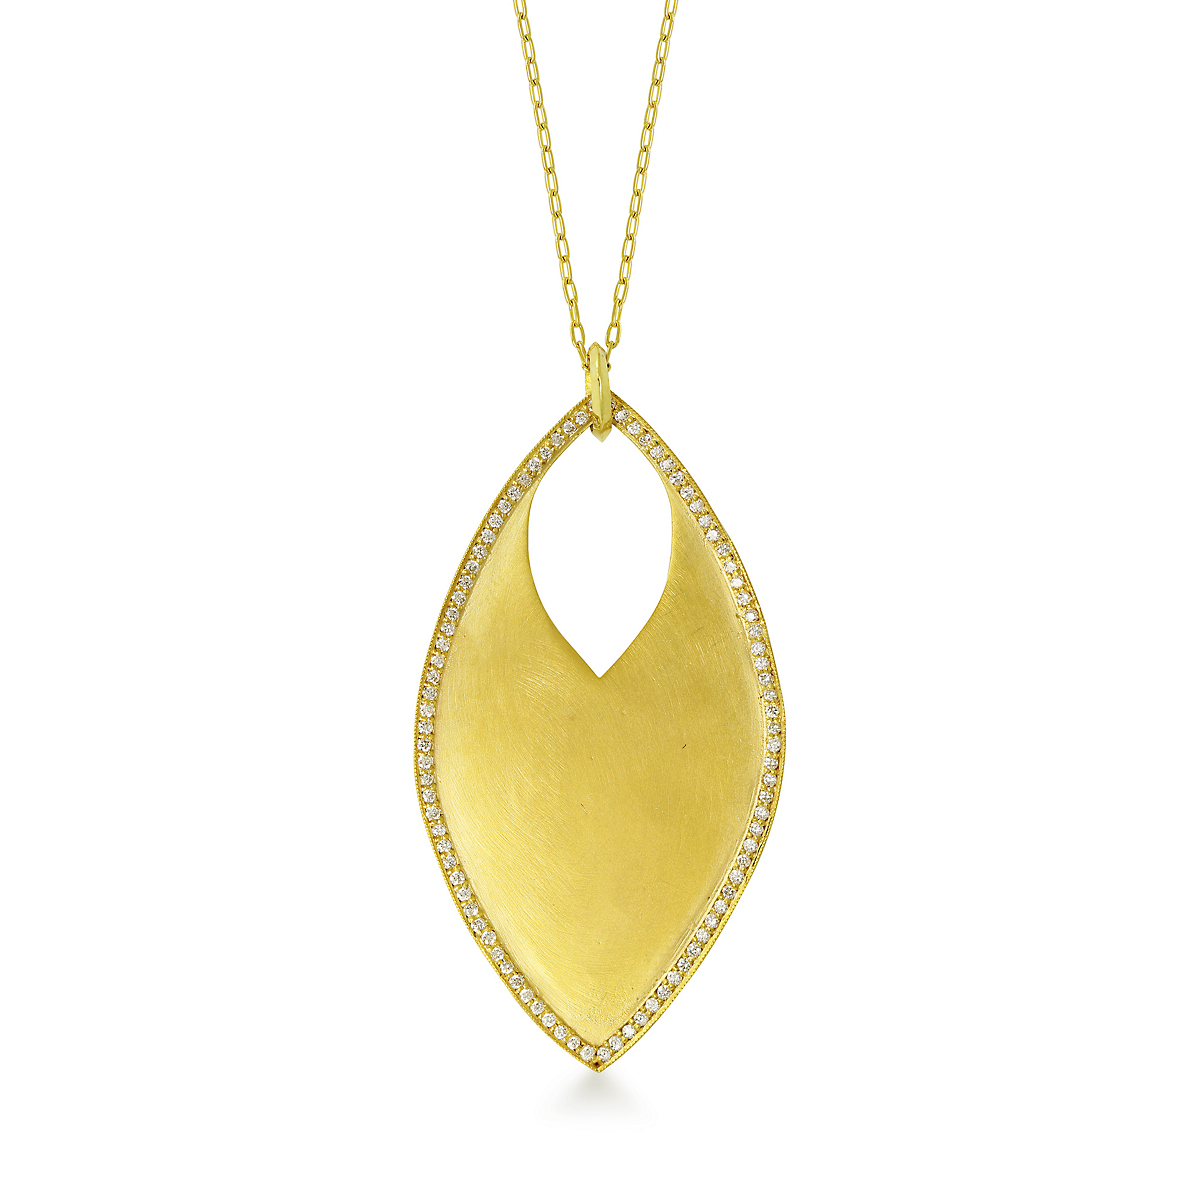 ILA Diamond & Recycled Gold Dalton Necklace